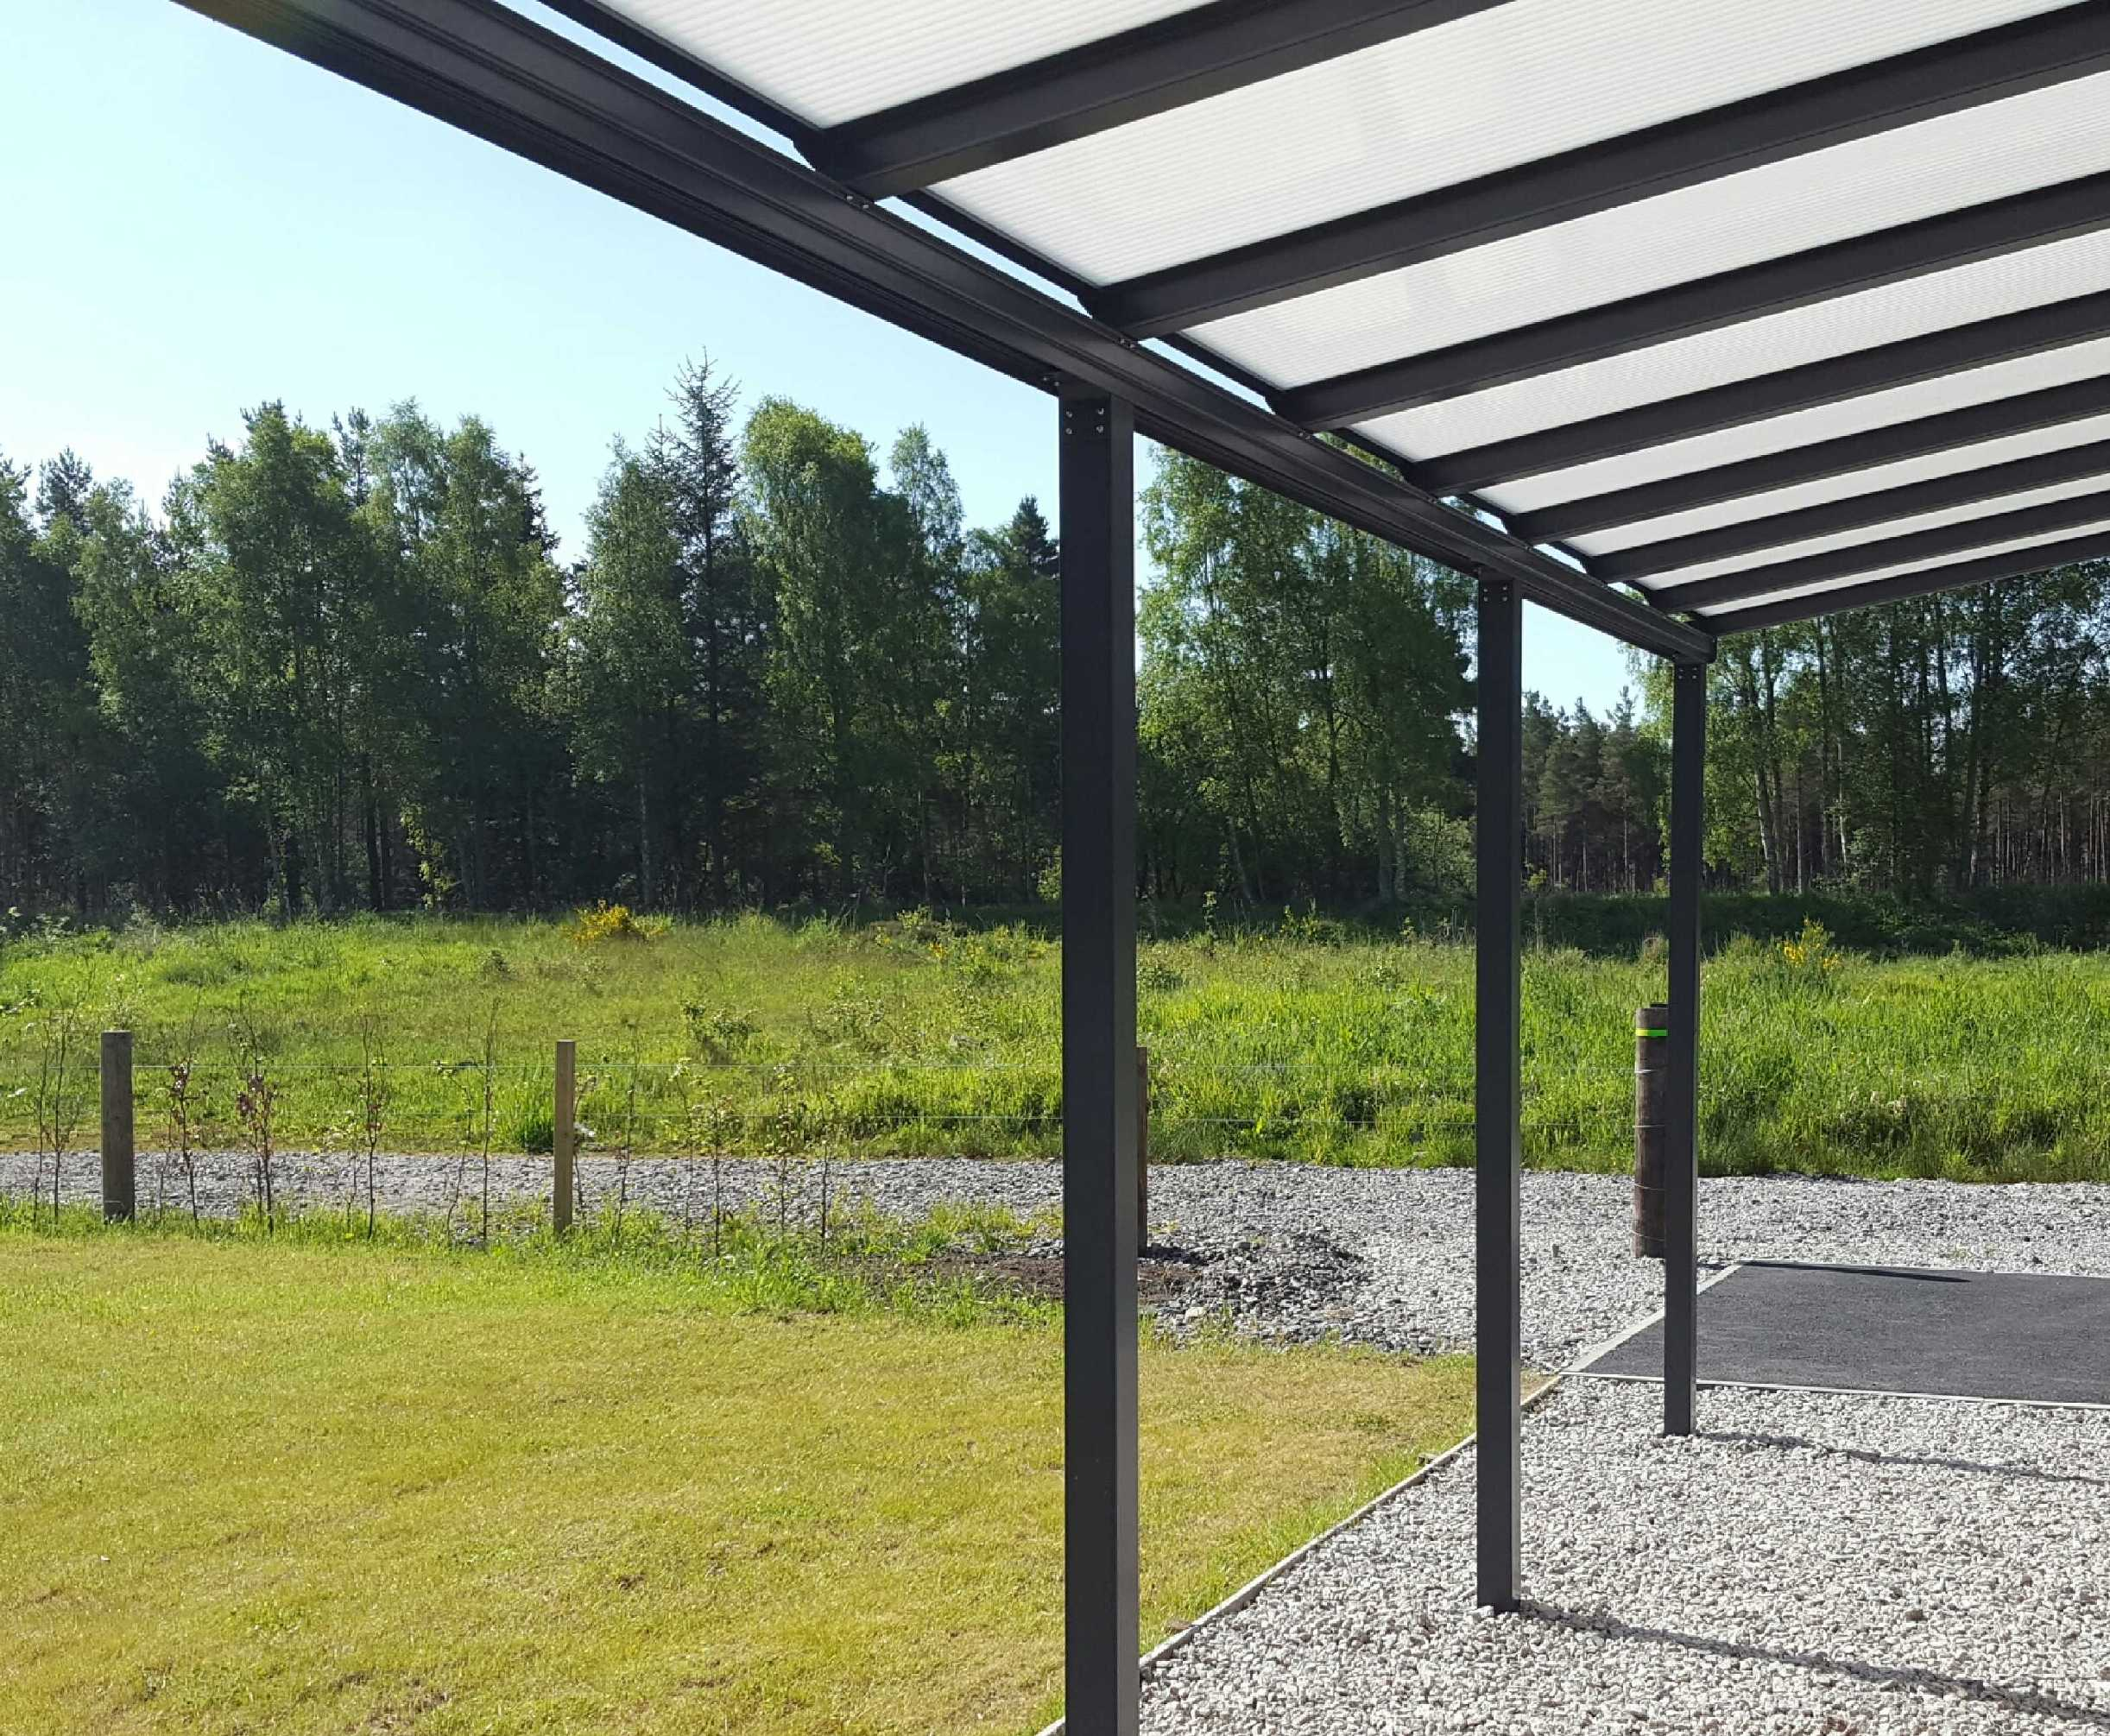 Omega Smart Lean-To Canopy, Anthracite Grey, 16mm Polycarbonate Glazing - 12.0m (W) x 4.5m (P), (5) Supporting Posts